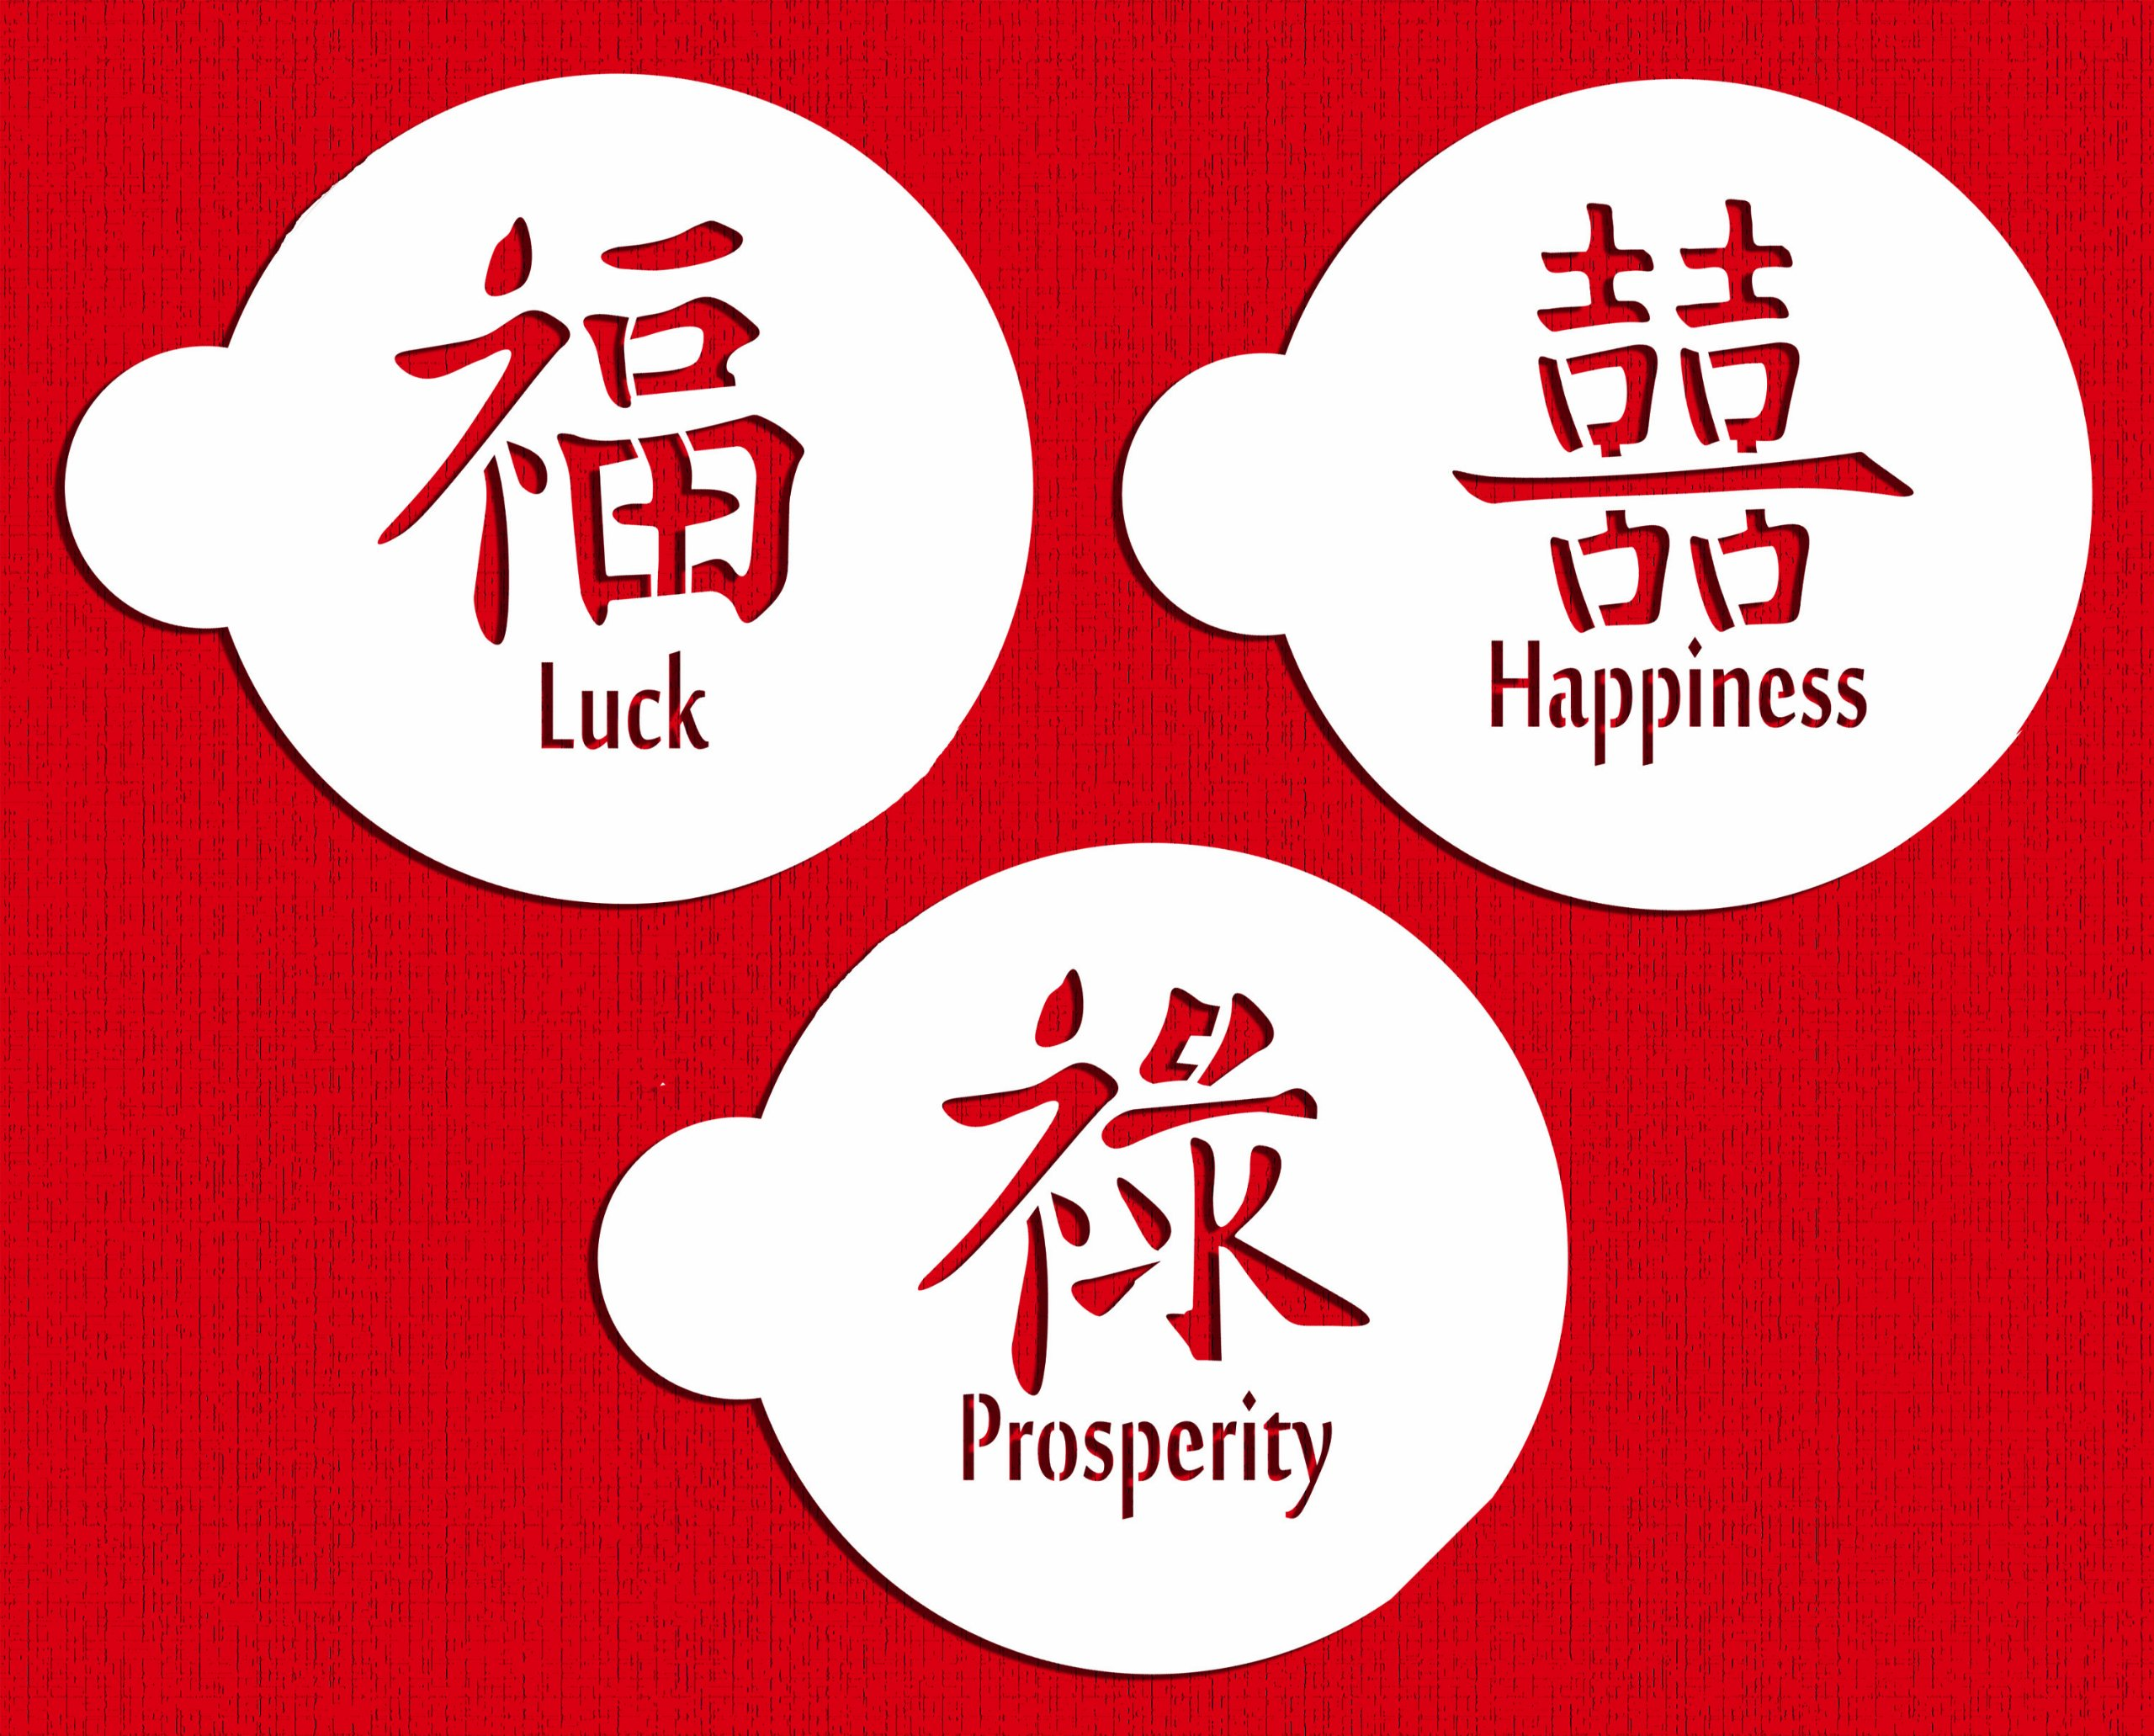 Designer Stencils C700 Double Happiness, Luck, Prosperity Symbols Cake and Cookie Stencil Set, Beige/Semi-Transparent